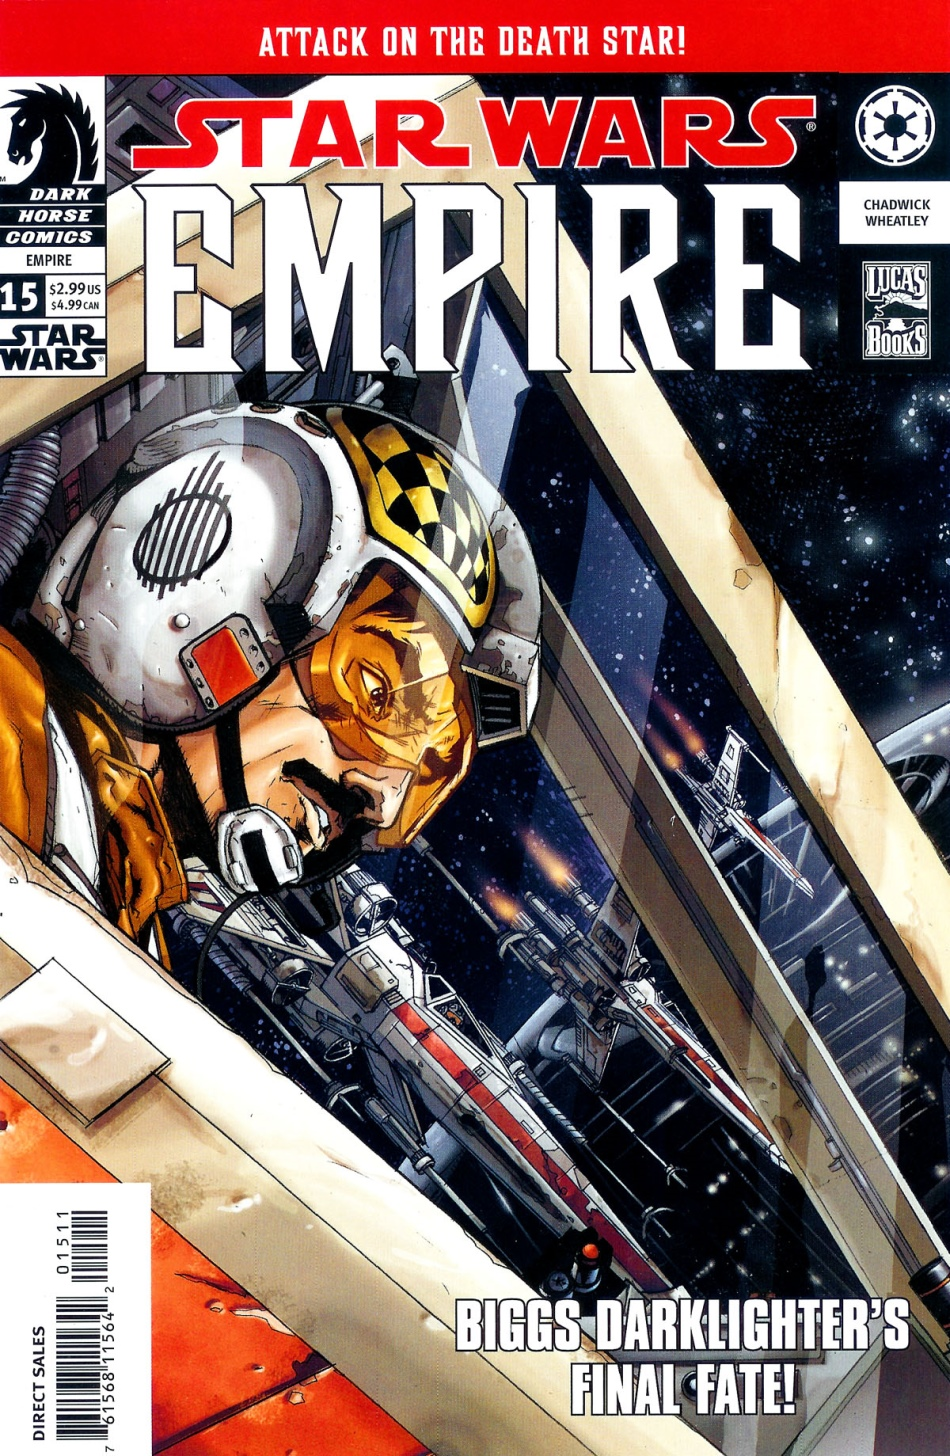 Empire #13: Darklighter, Part 4 (24.12.2003)